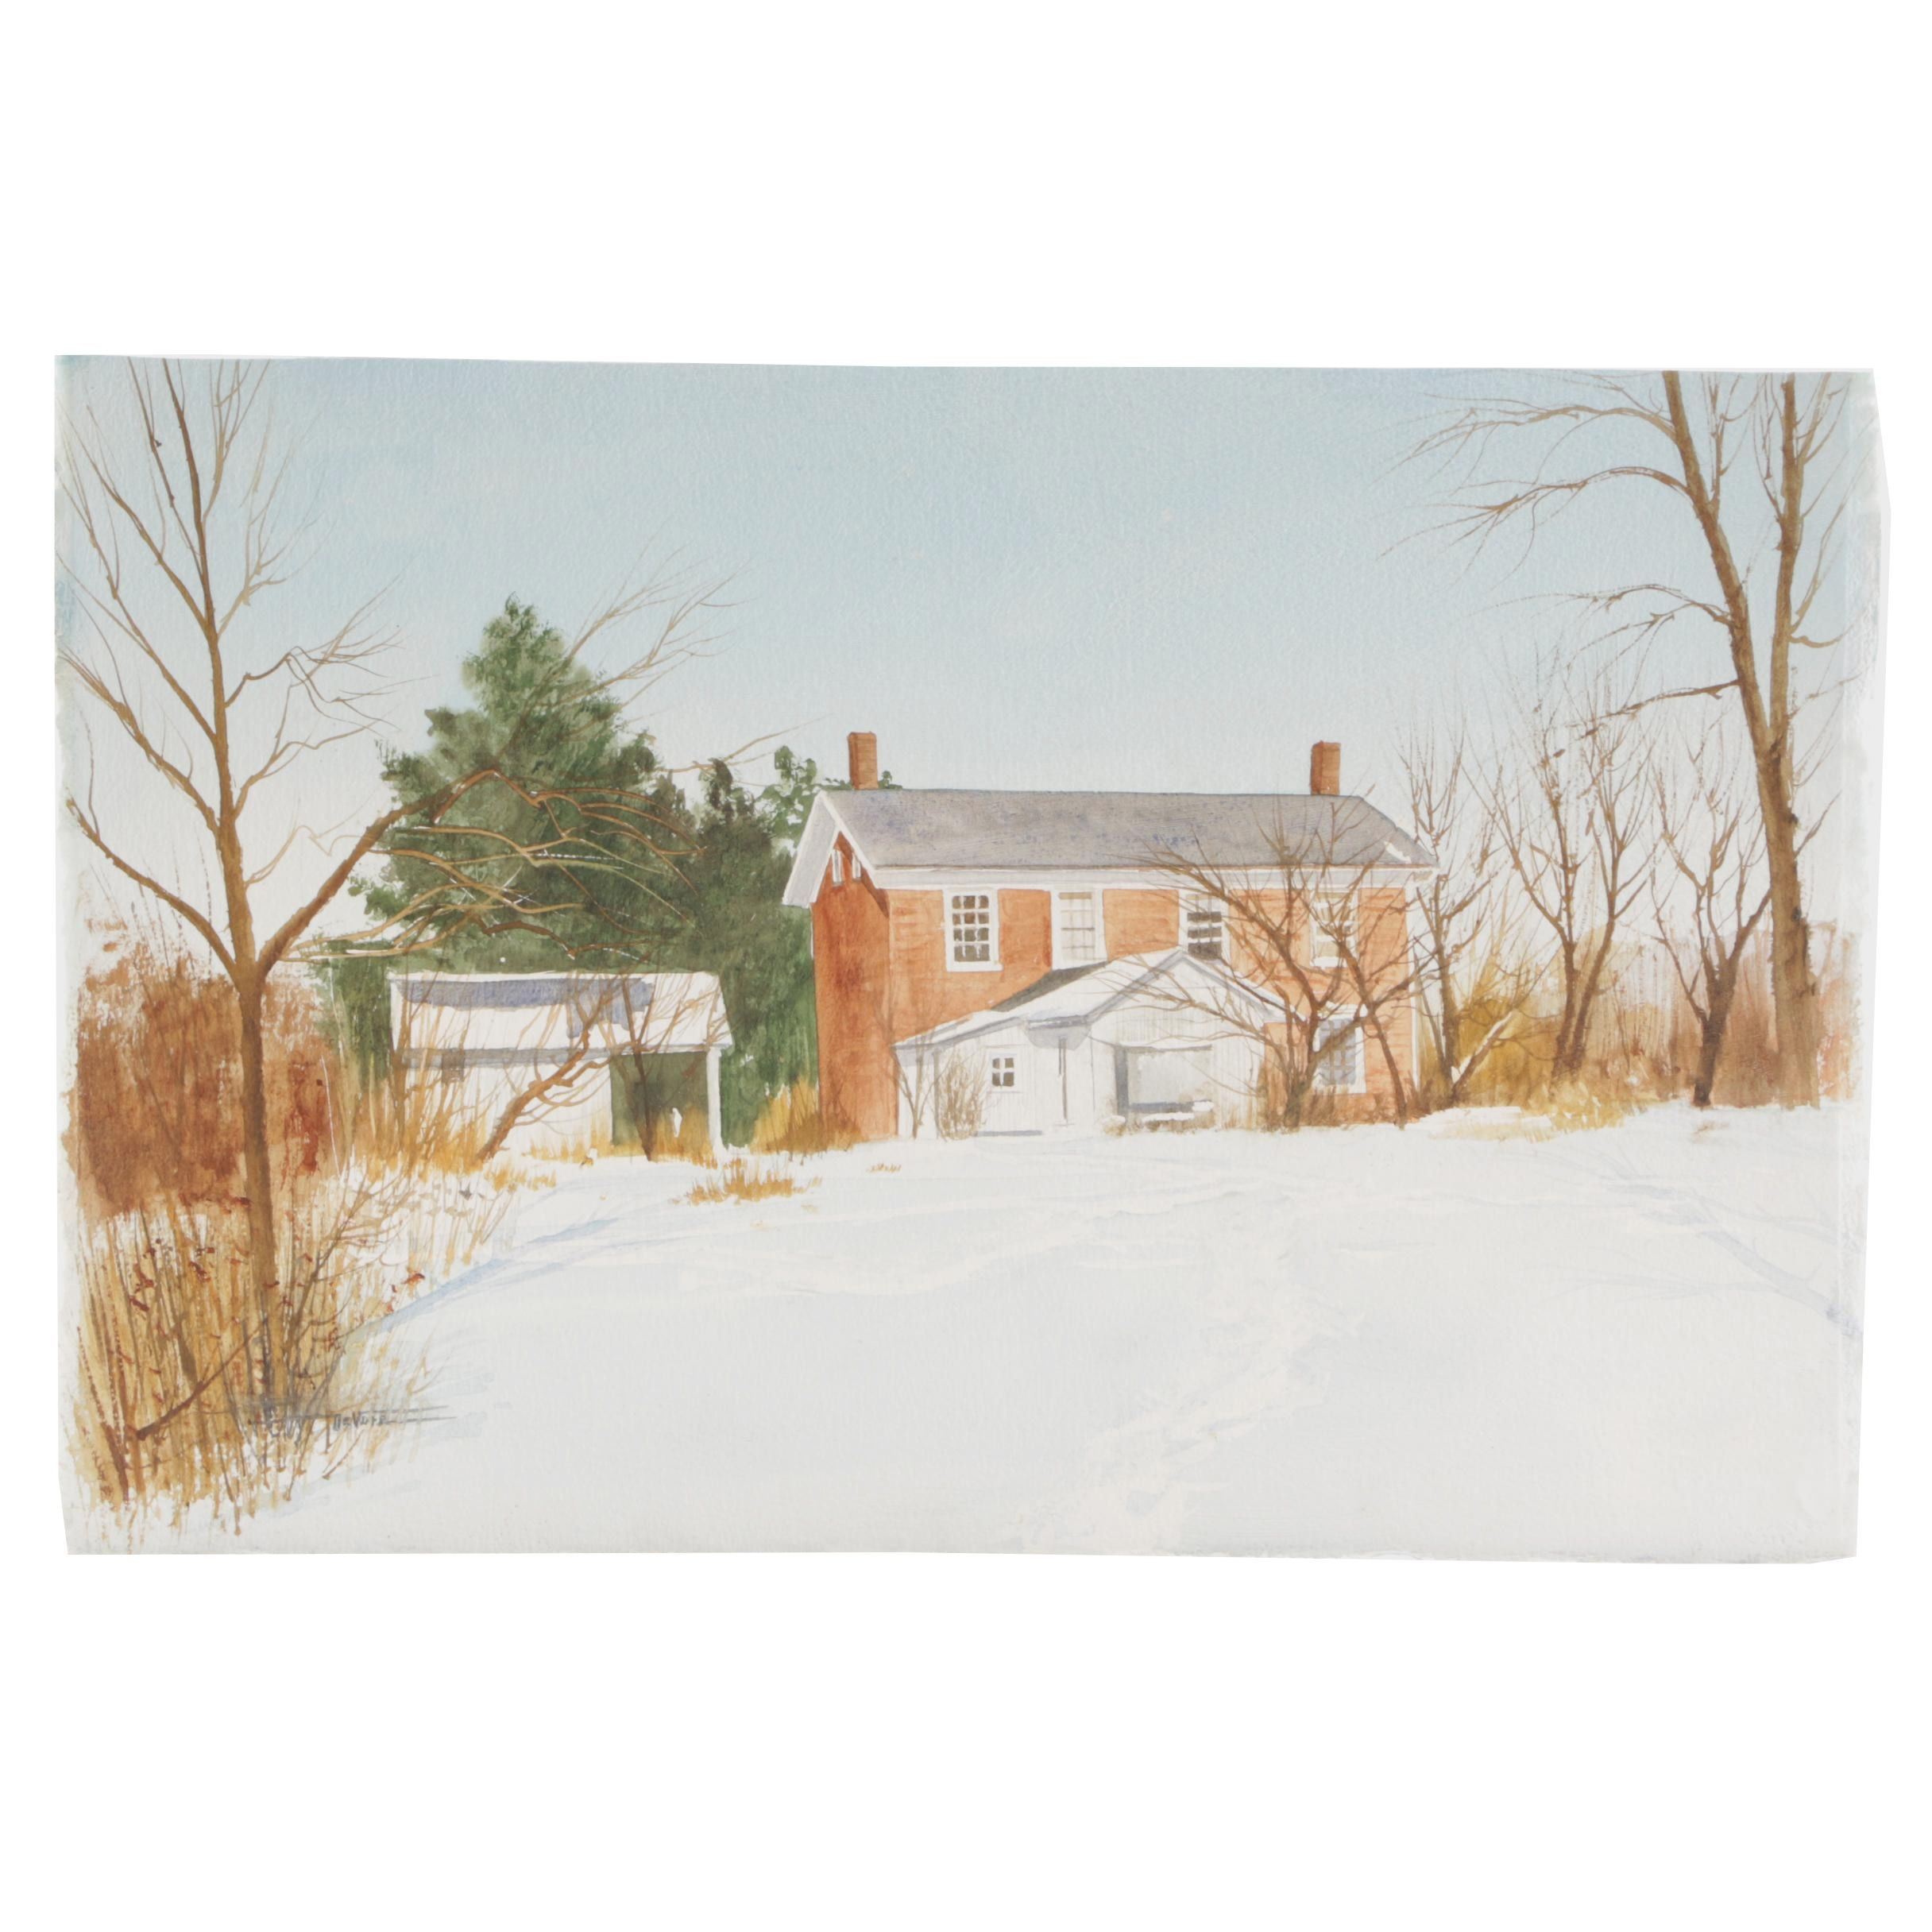 James DeVore Watercolor Painting of Winter Landscape with House